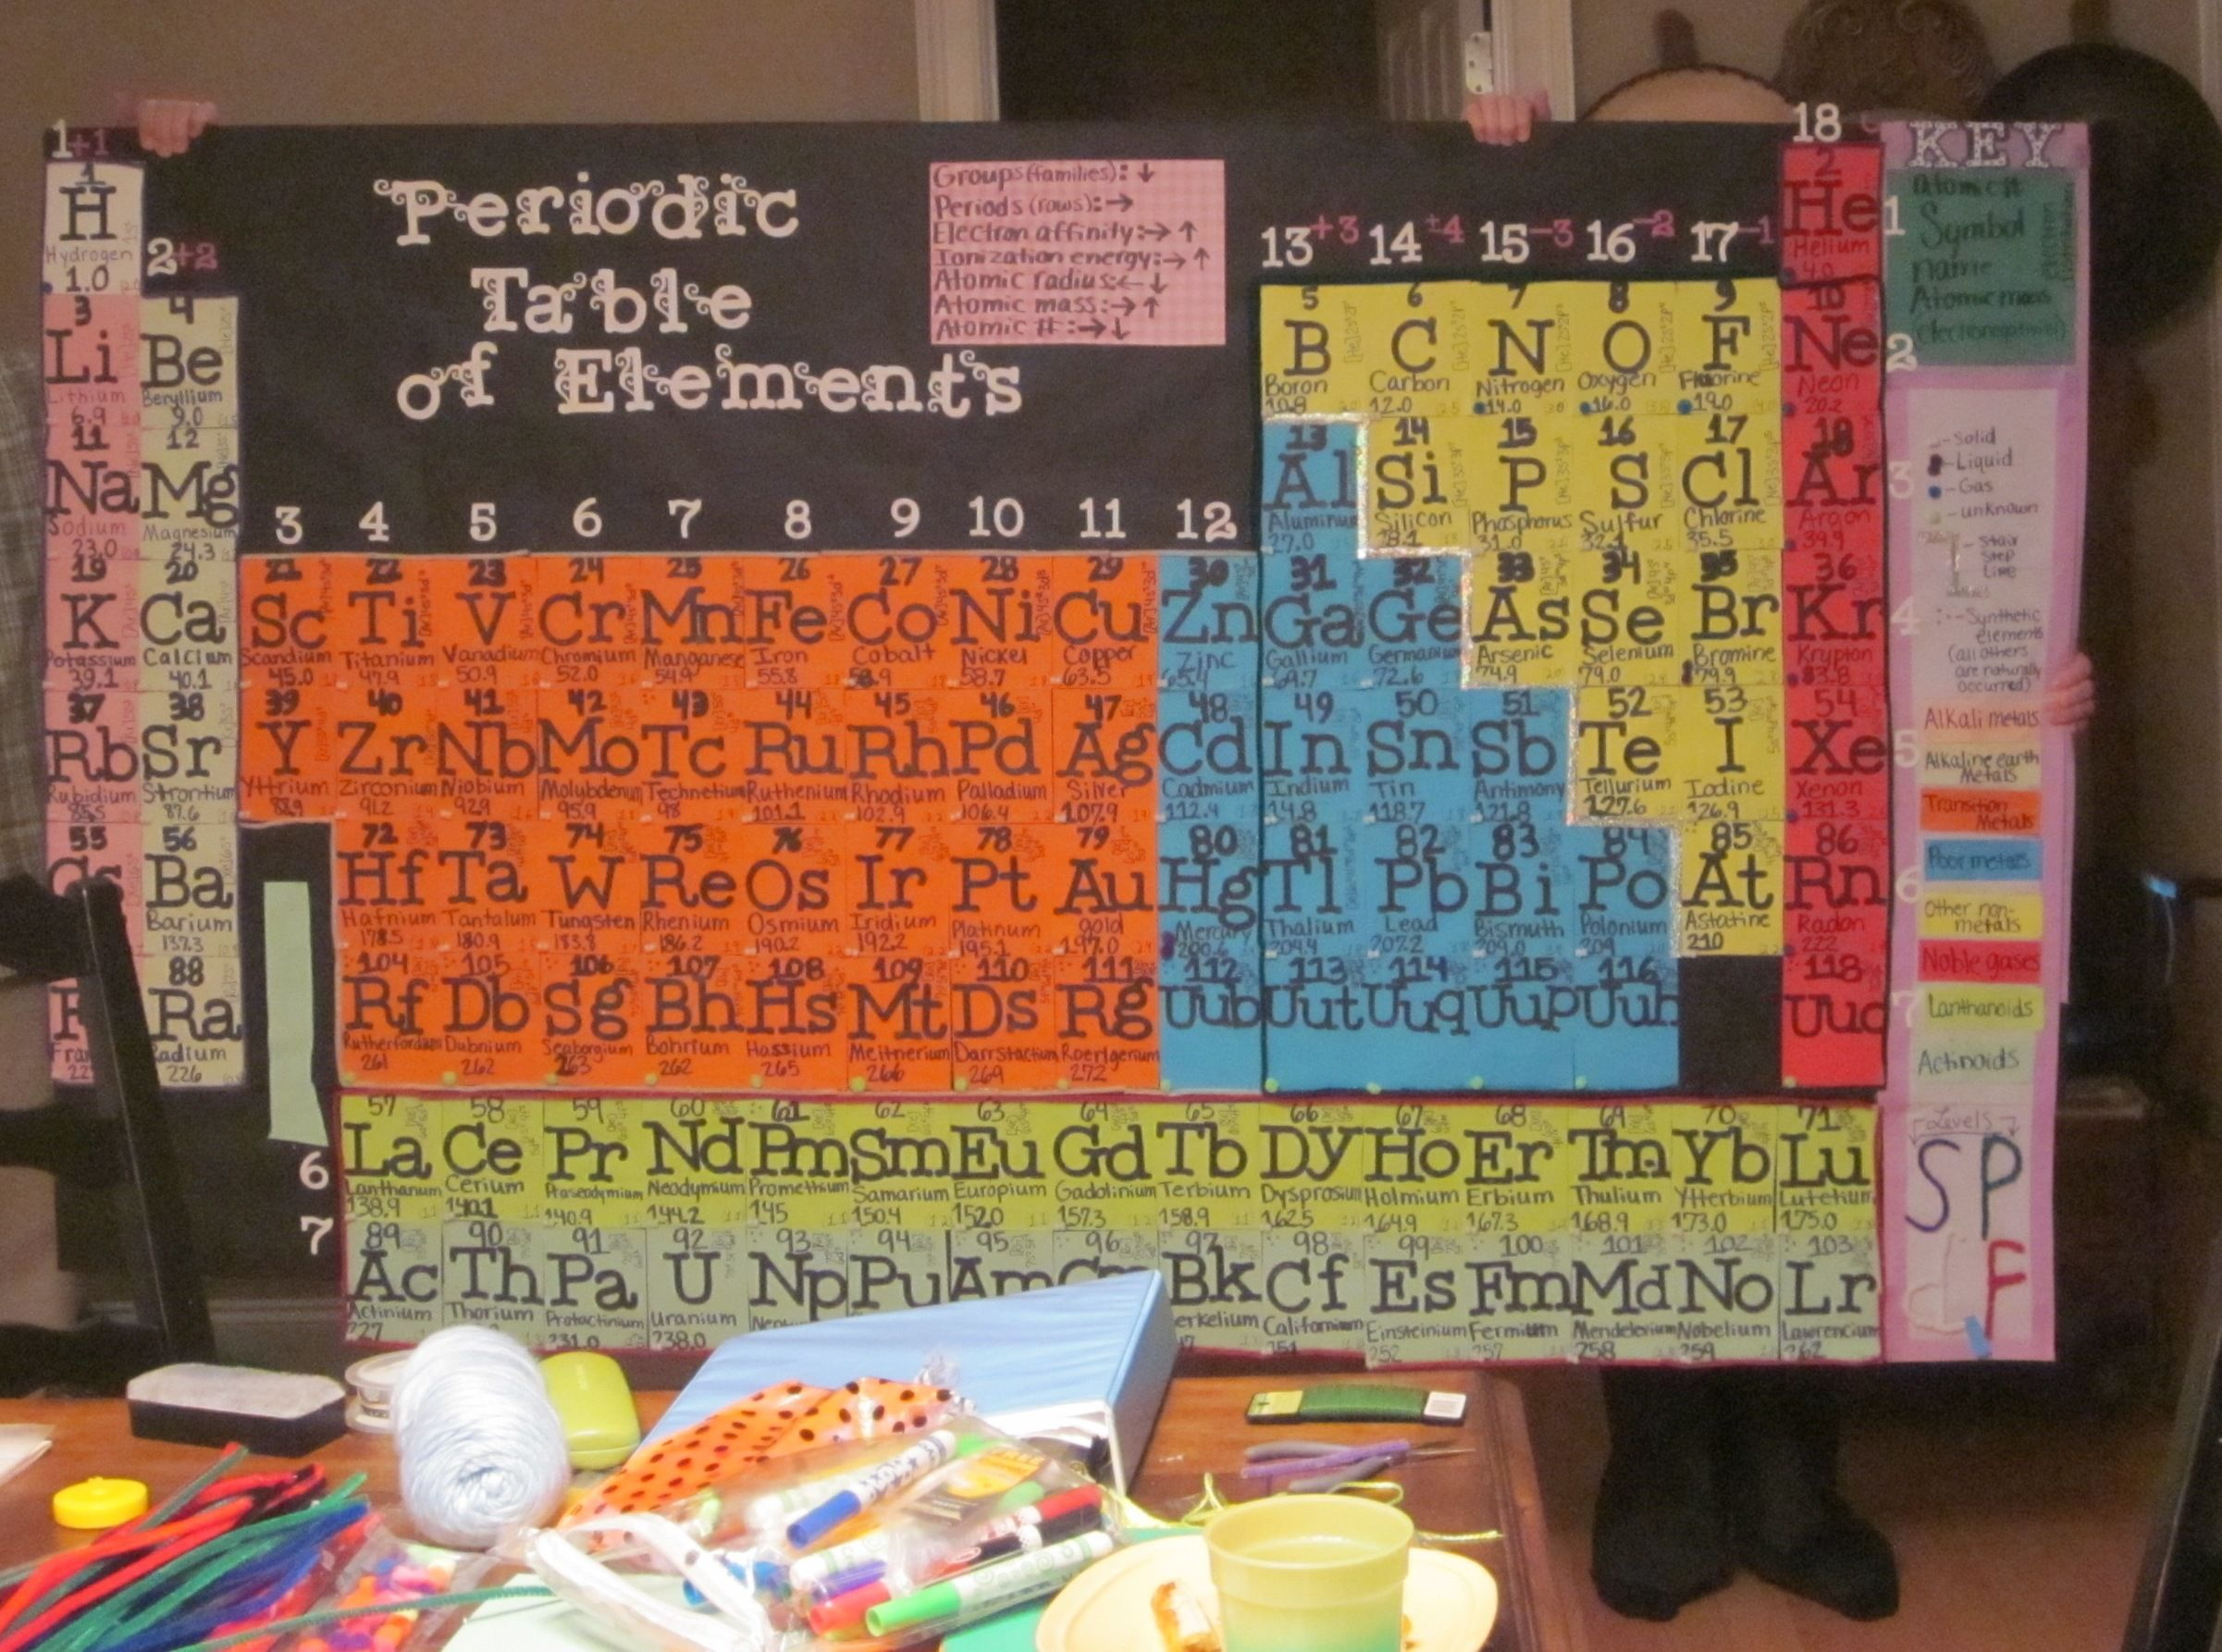 Periodic table we had to make for chemistry its 4x7 and includes periodic table we had to make for chemistry its 4x7 and includes atomic mass mass number atomic number electronegativities electron affinity urtaz Image collections